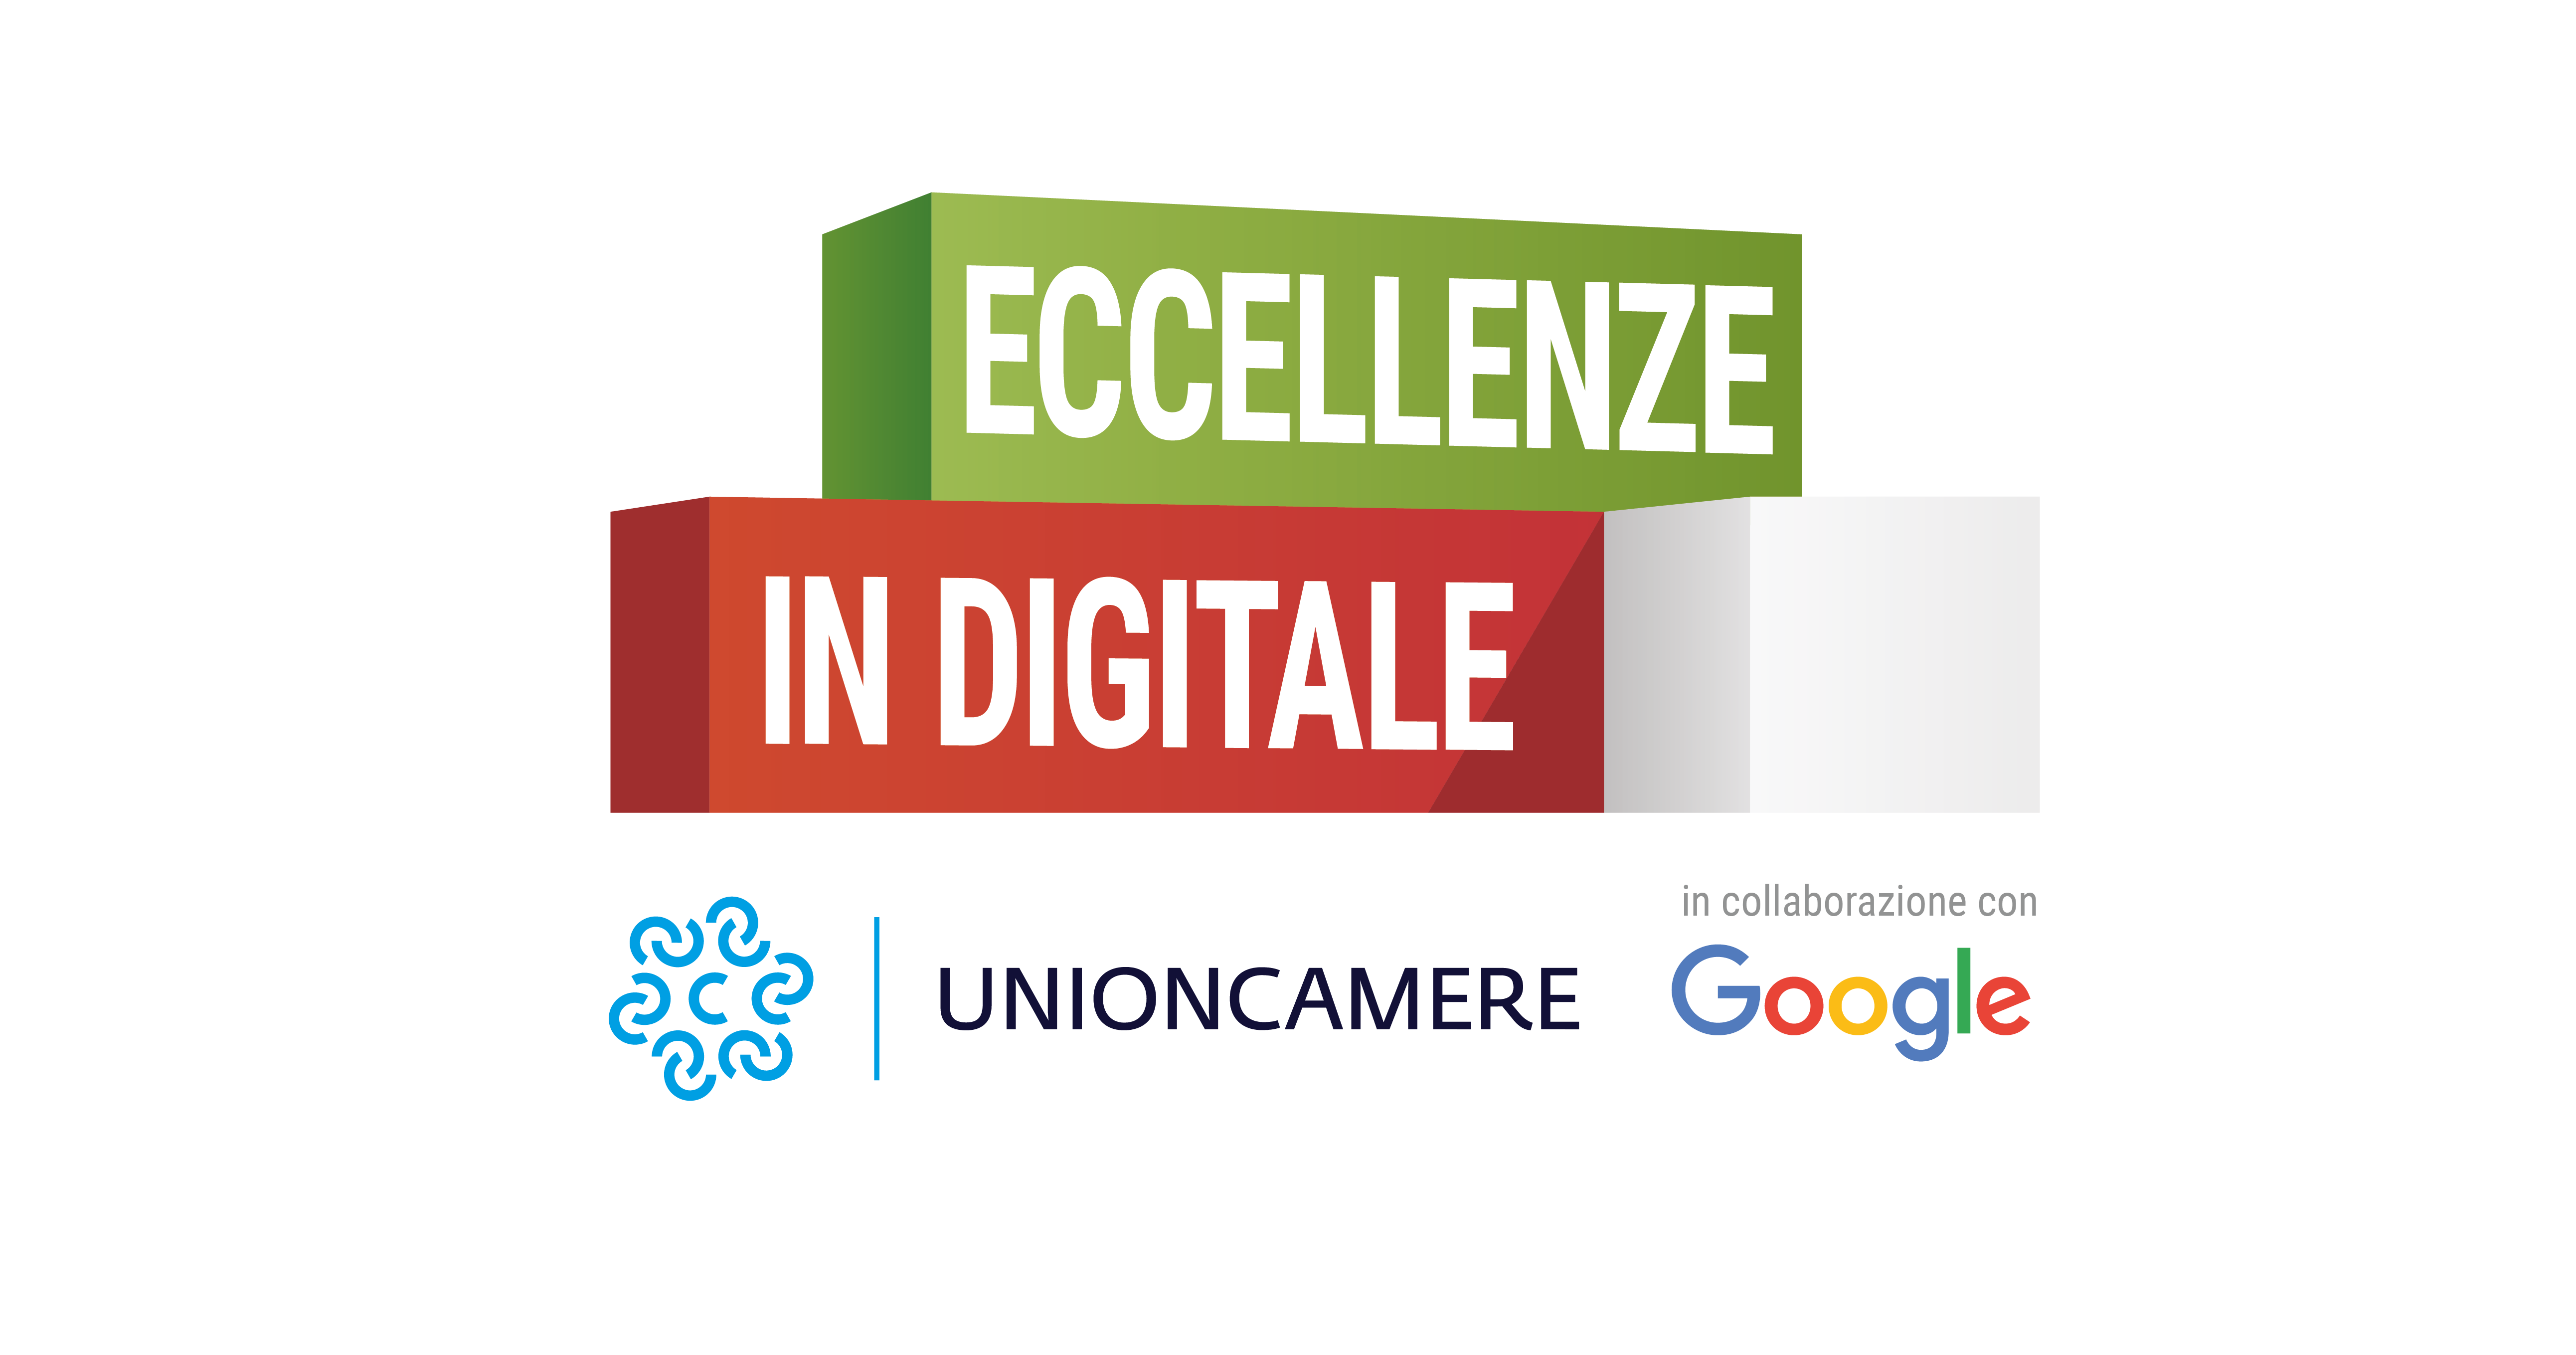 uploaded/Eccellenze in Digitale 2018/EiD 2018 - Loghi merge partner verticale.png